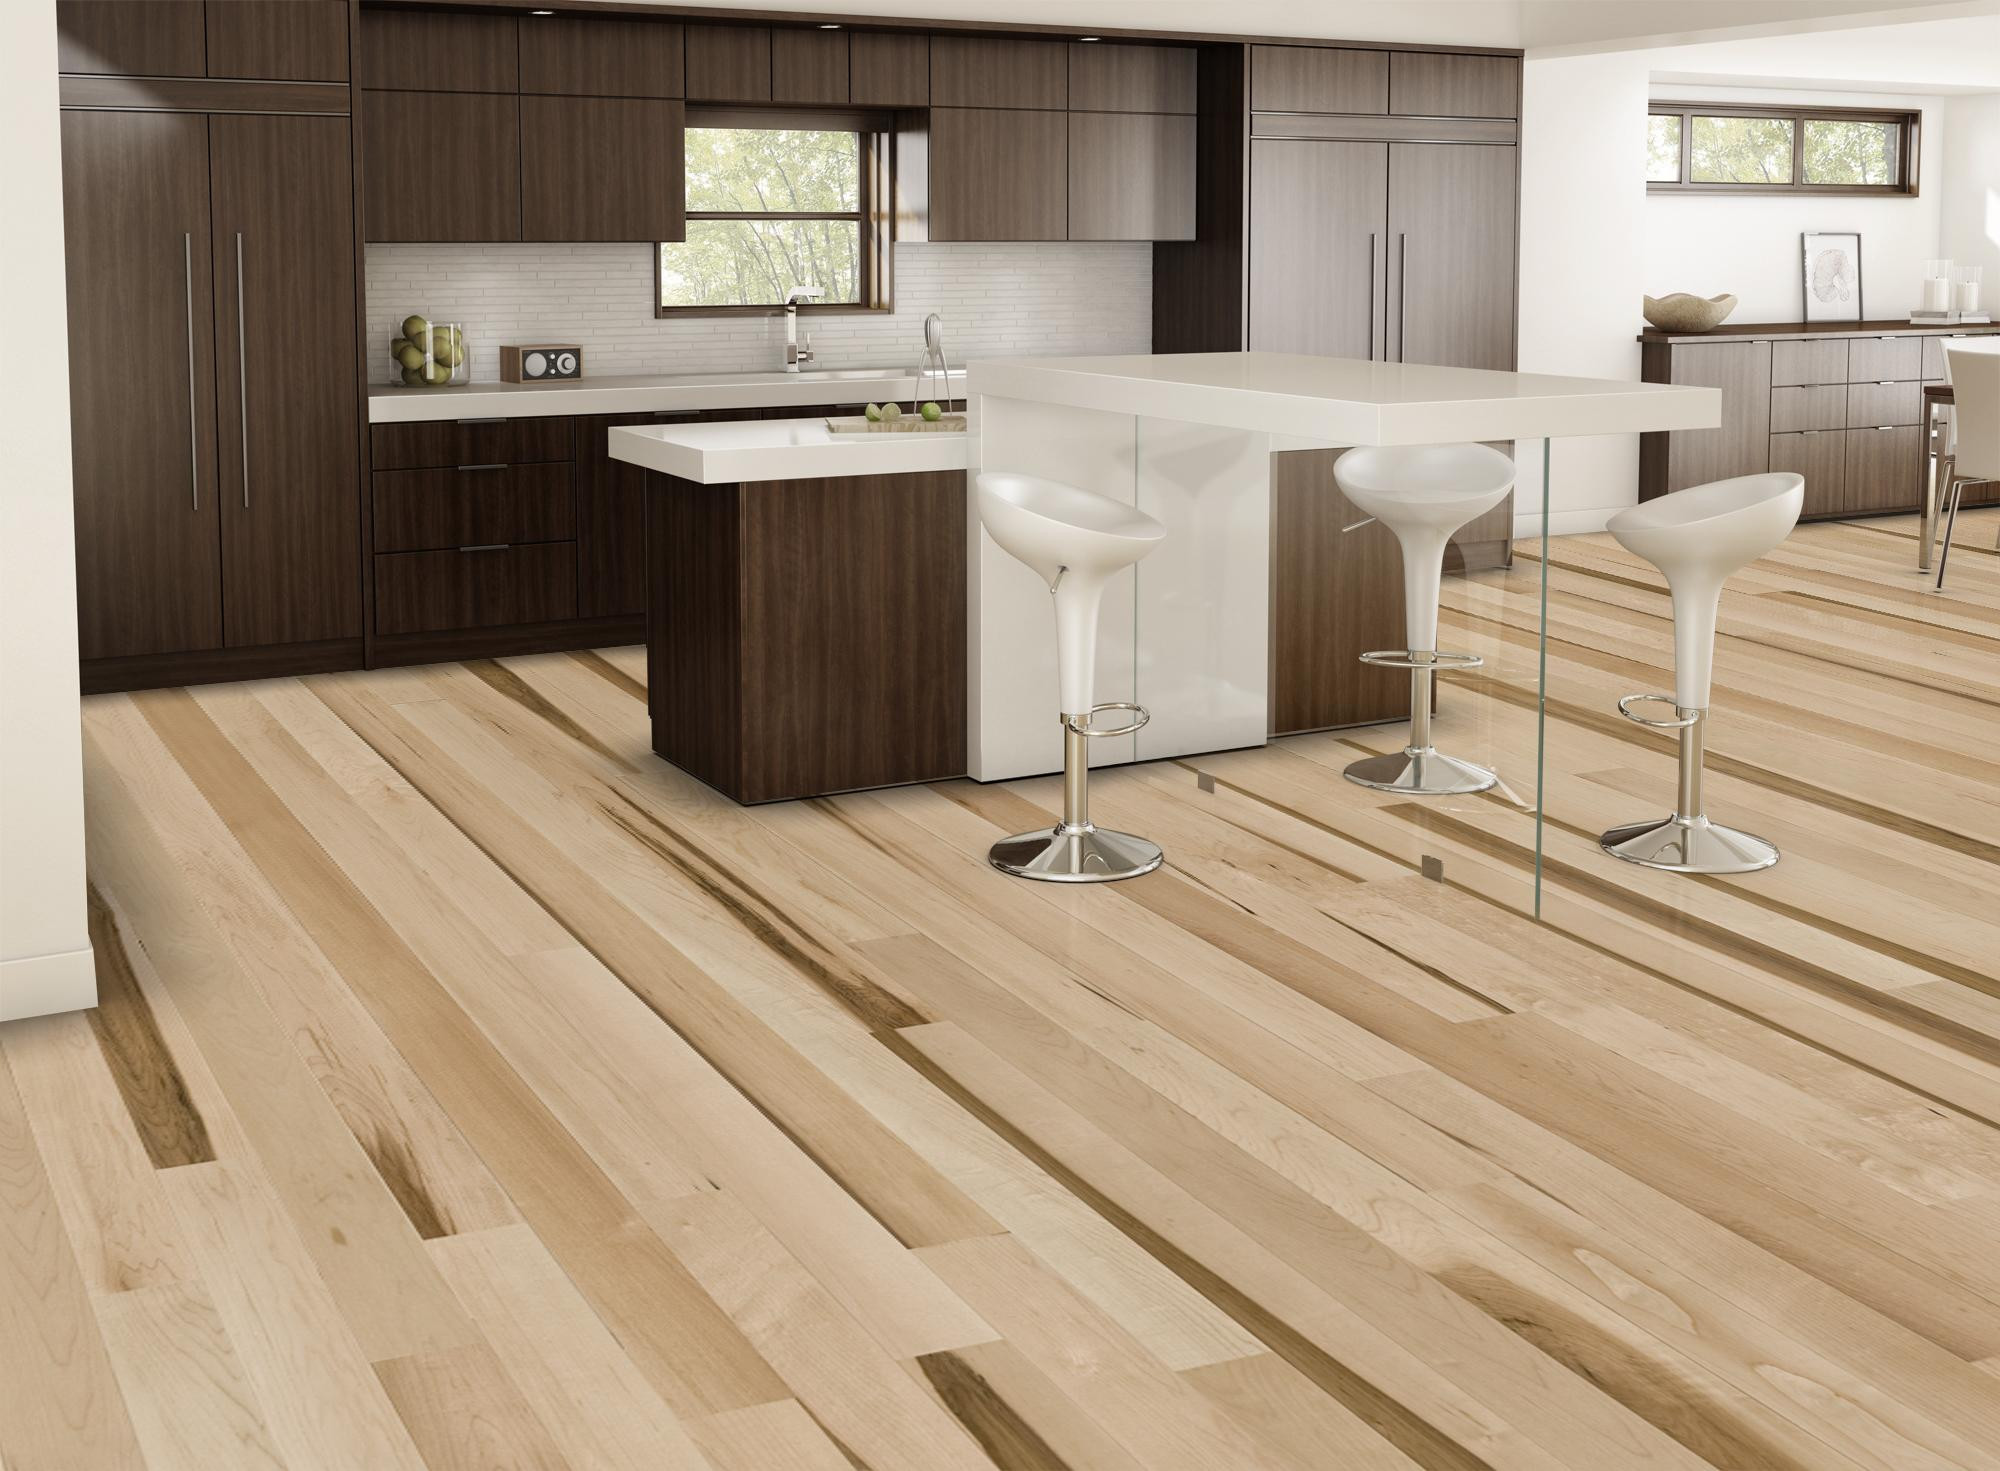 3 4 inch maple hardwood flooring of kingsmill natural maple 4 wide 3 4 solid hardwood flooring for kingsmill natural maple 4 wide 3 4 solid hardwood flooring room